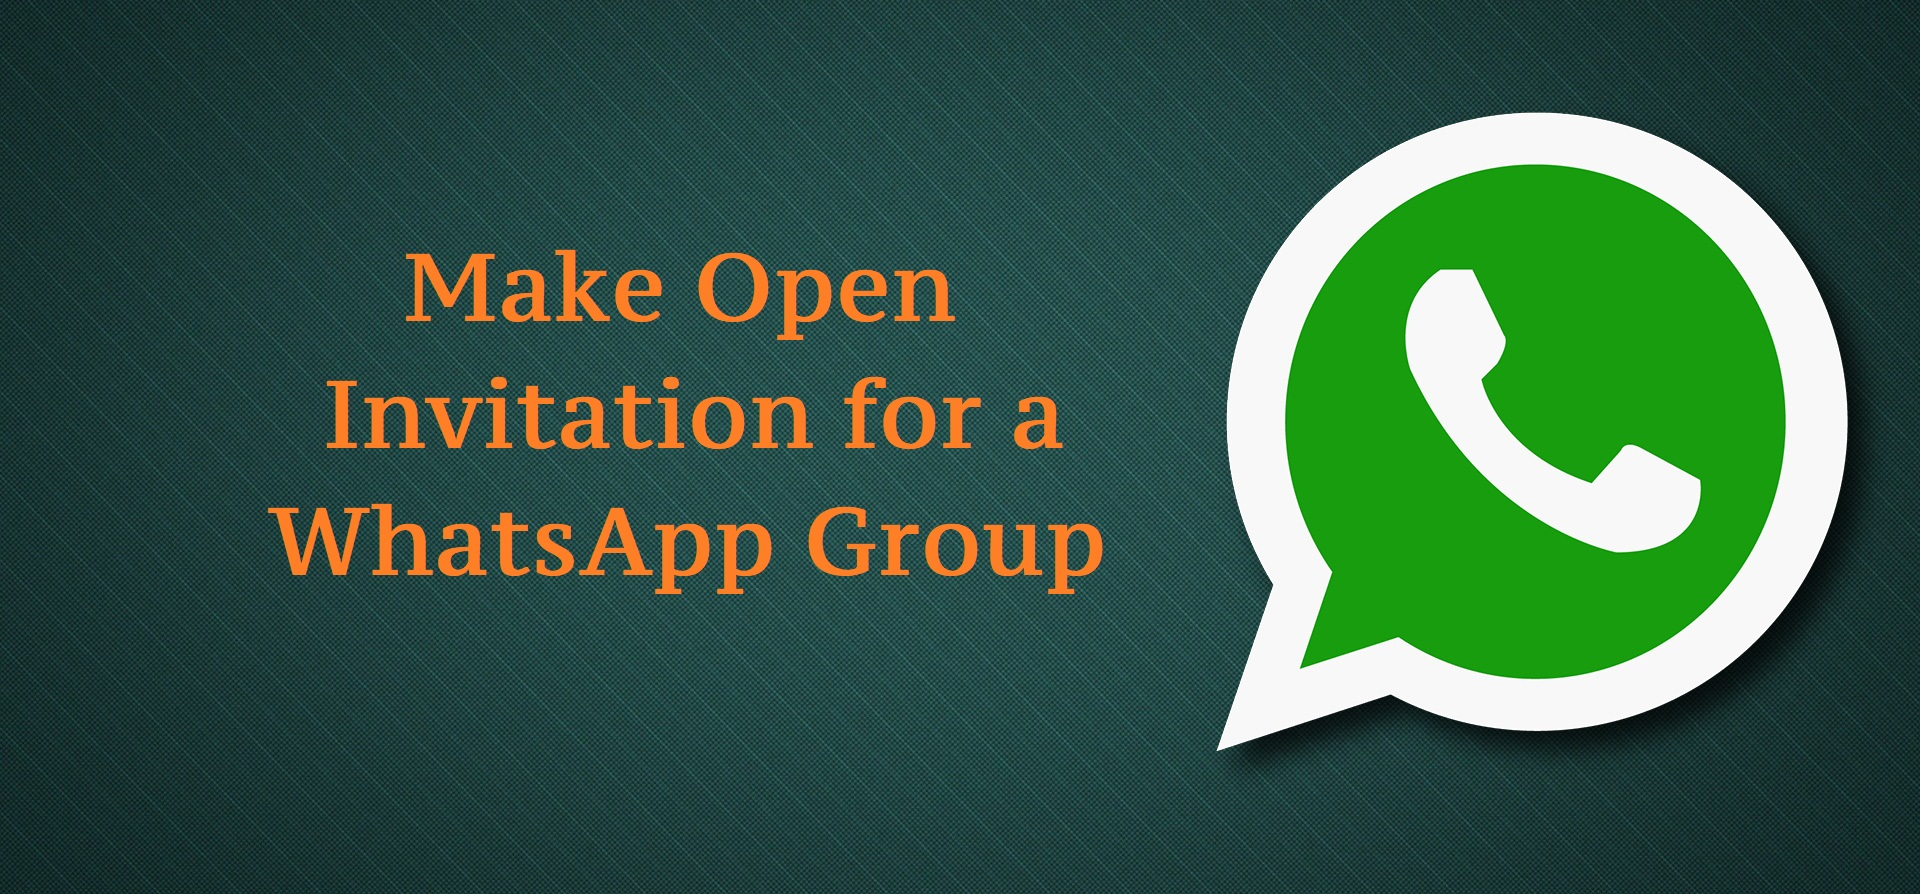 How to Make Open Invitation for a WhatsApp Group